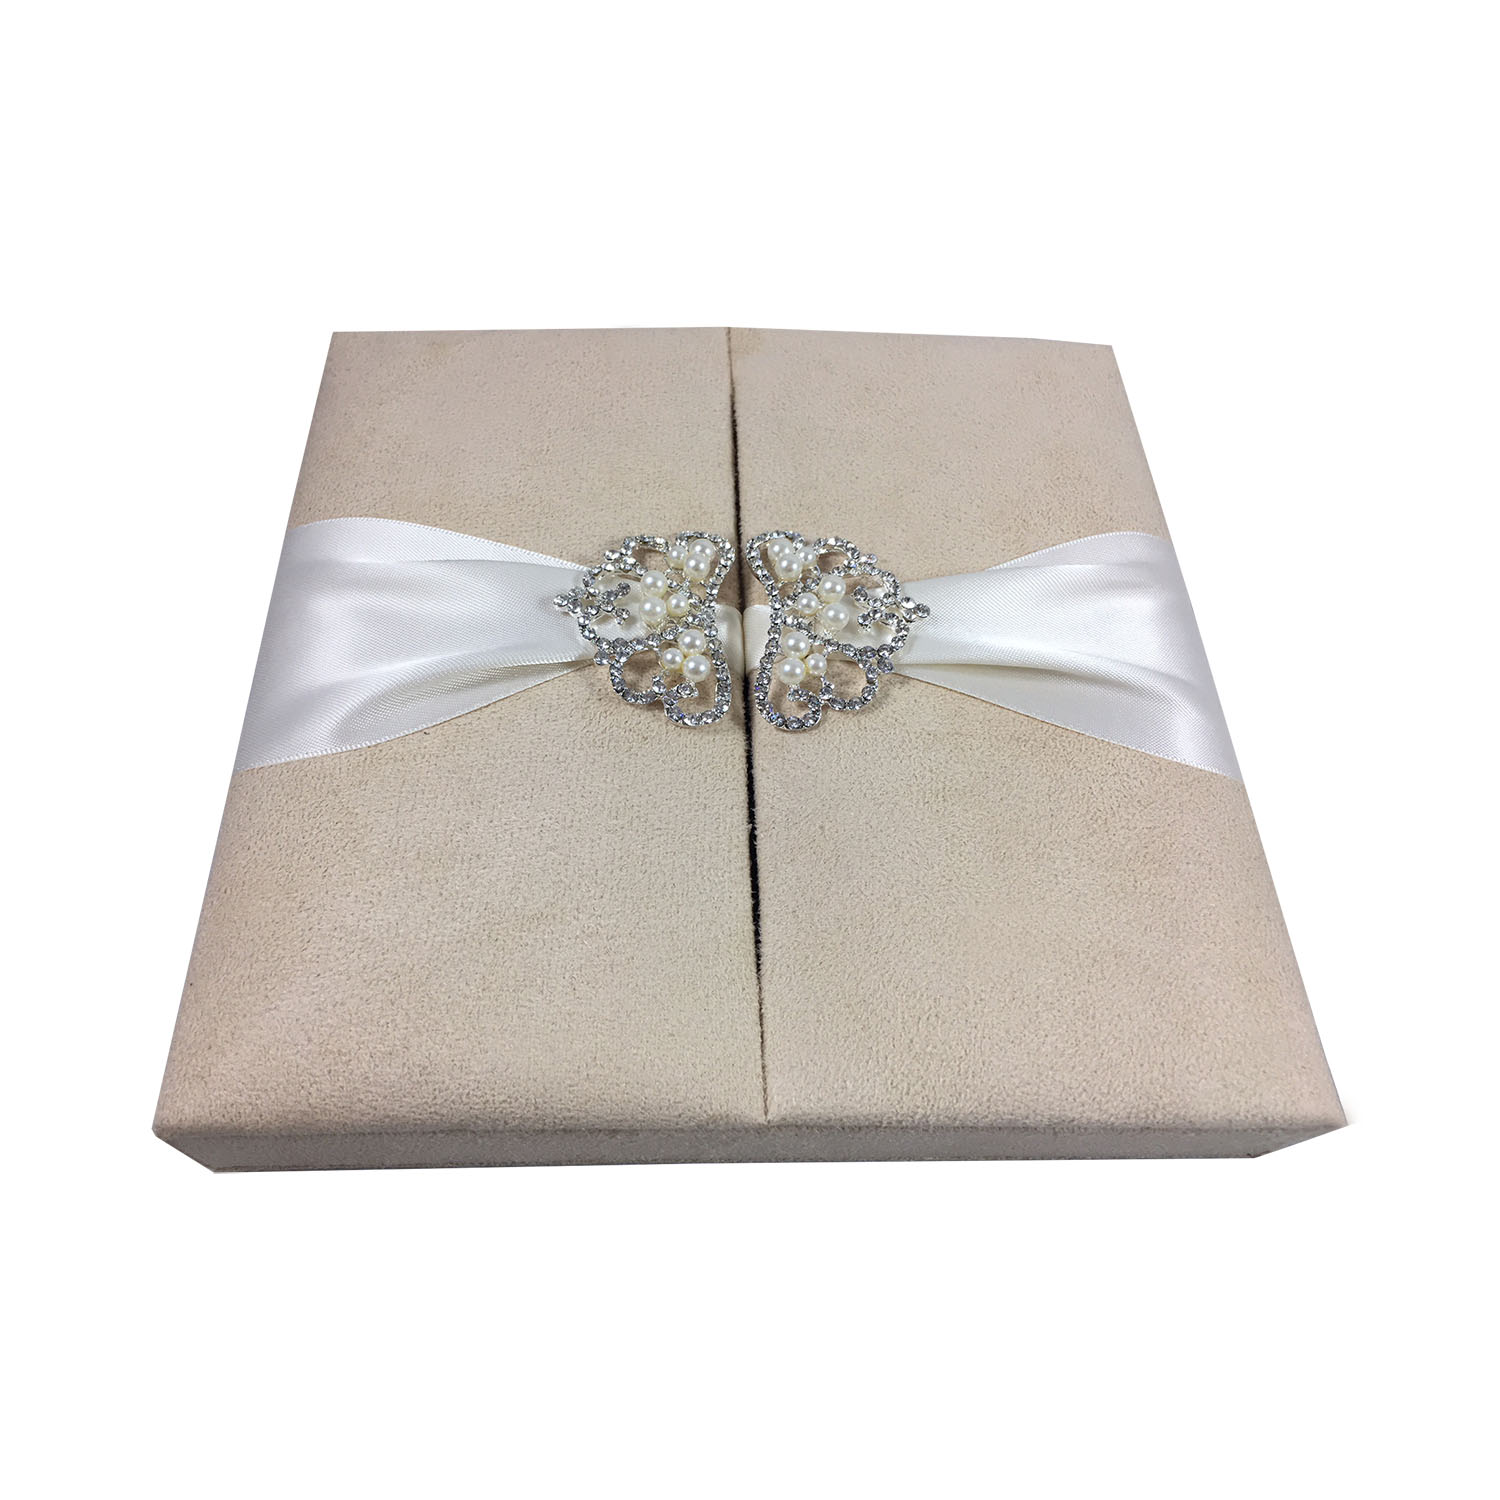 cream suede box with pearl crown brooch embellishment